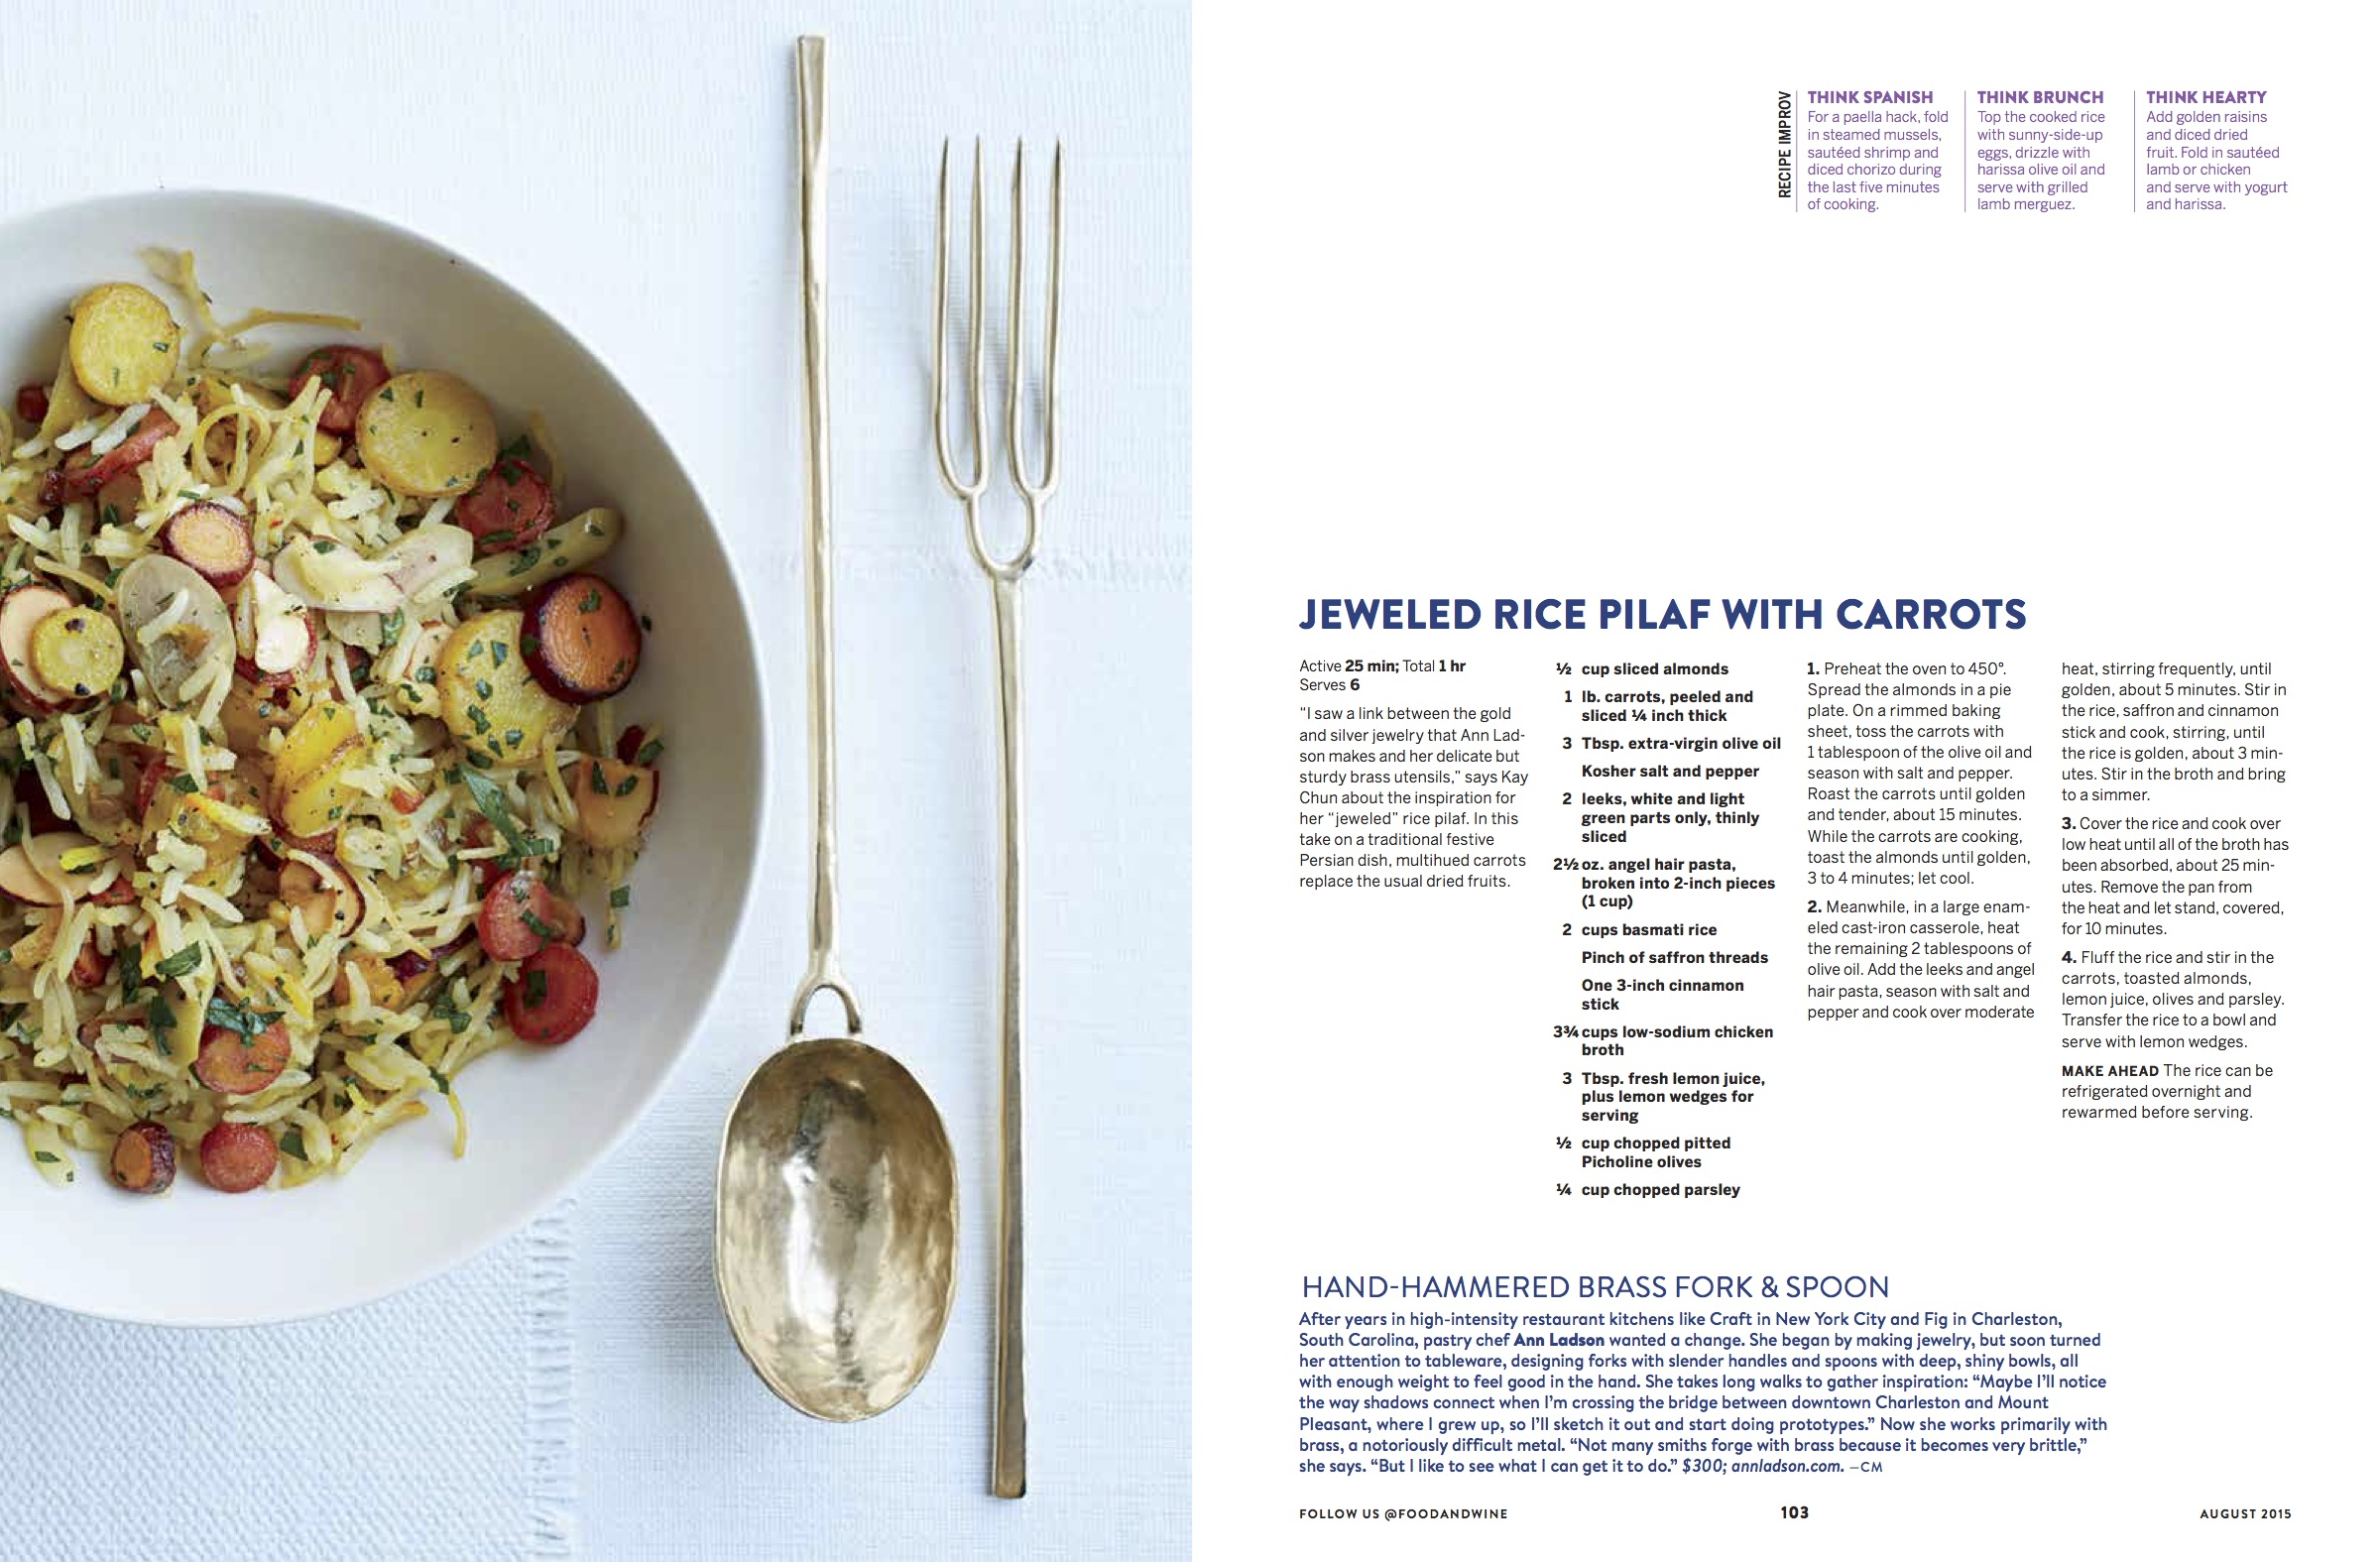 Food and Wine, August 2015